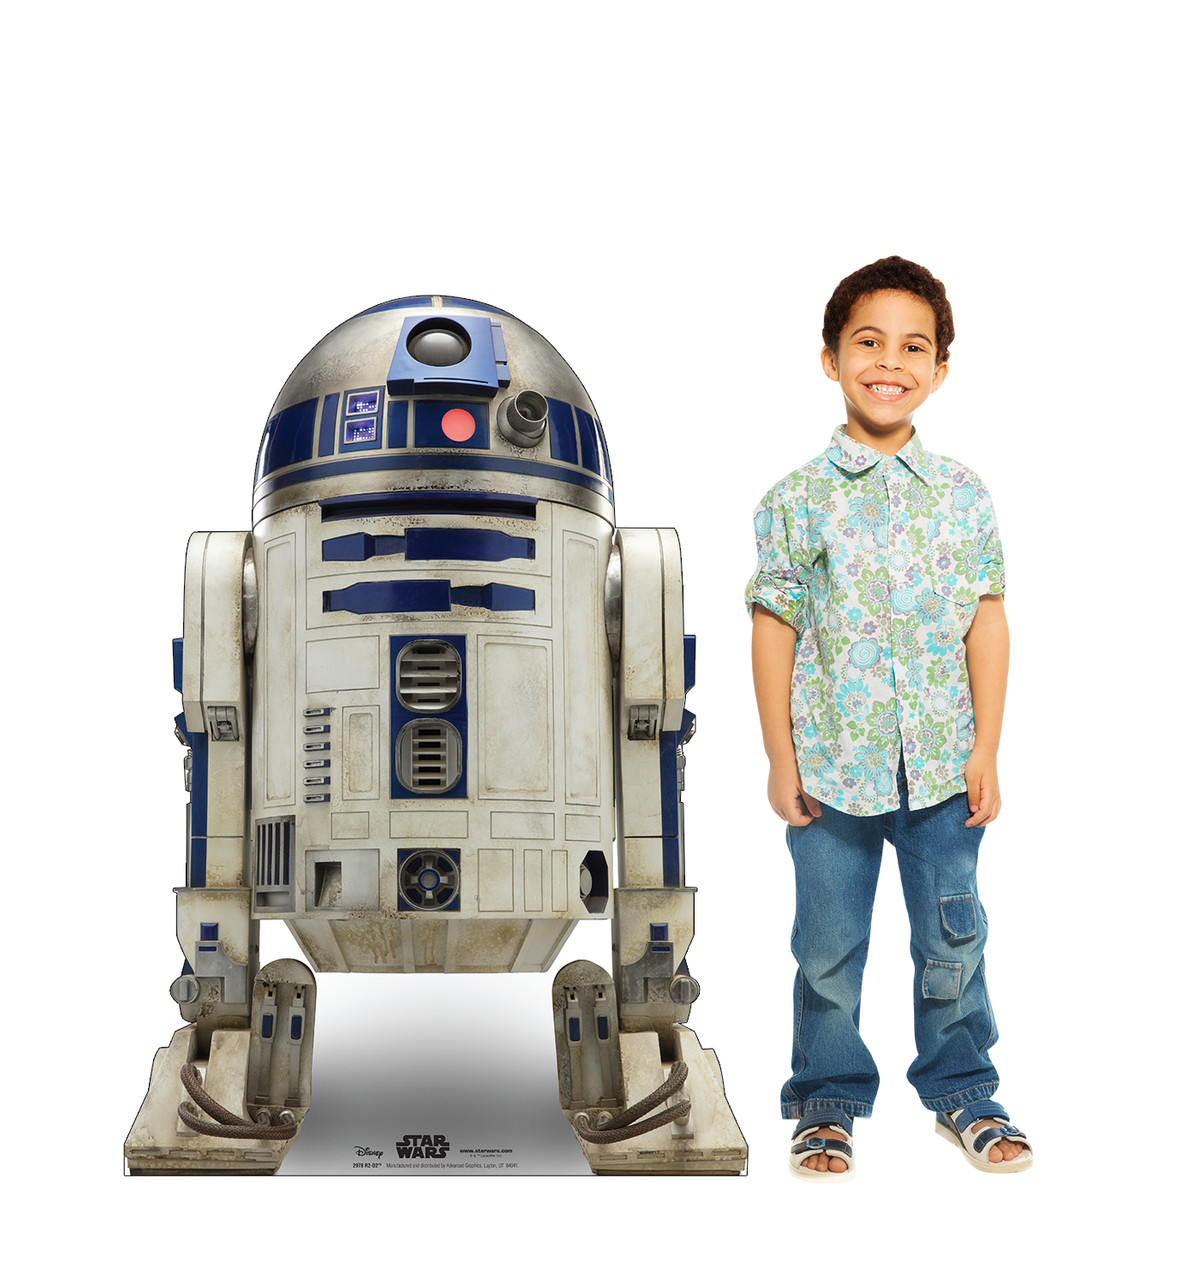 Life-size cardboard standee of R2-D2™ (Star Wars IX) with model.